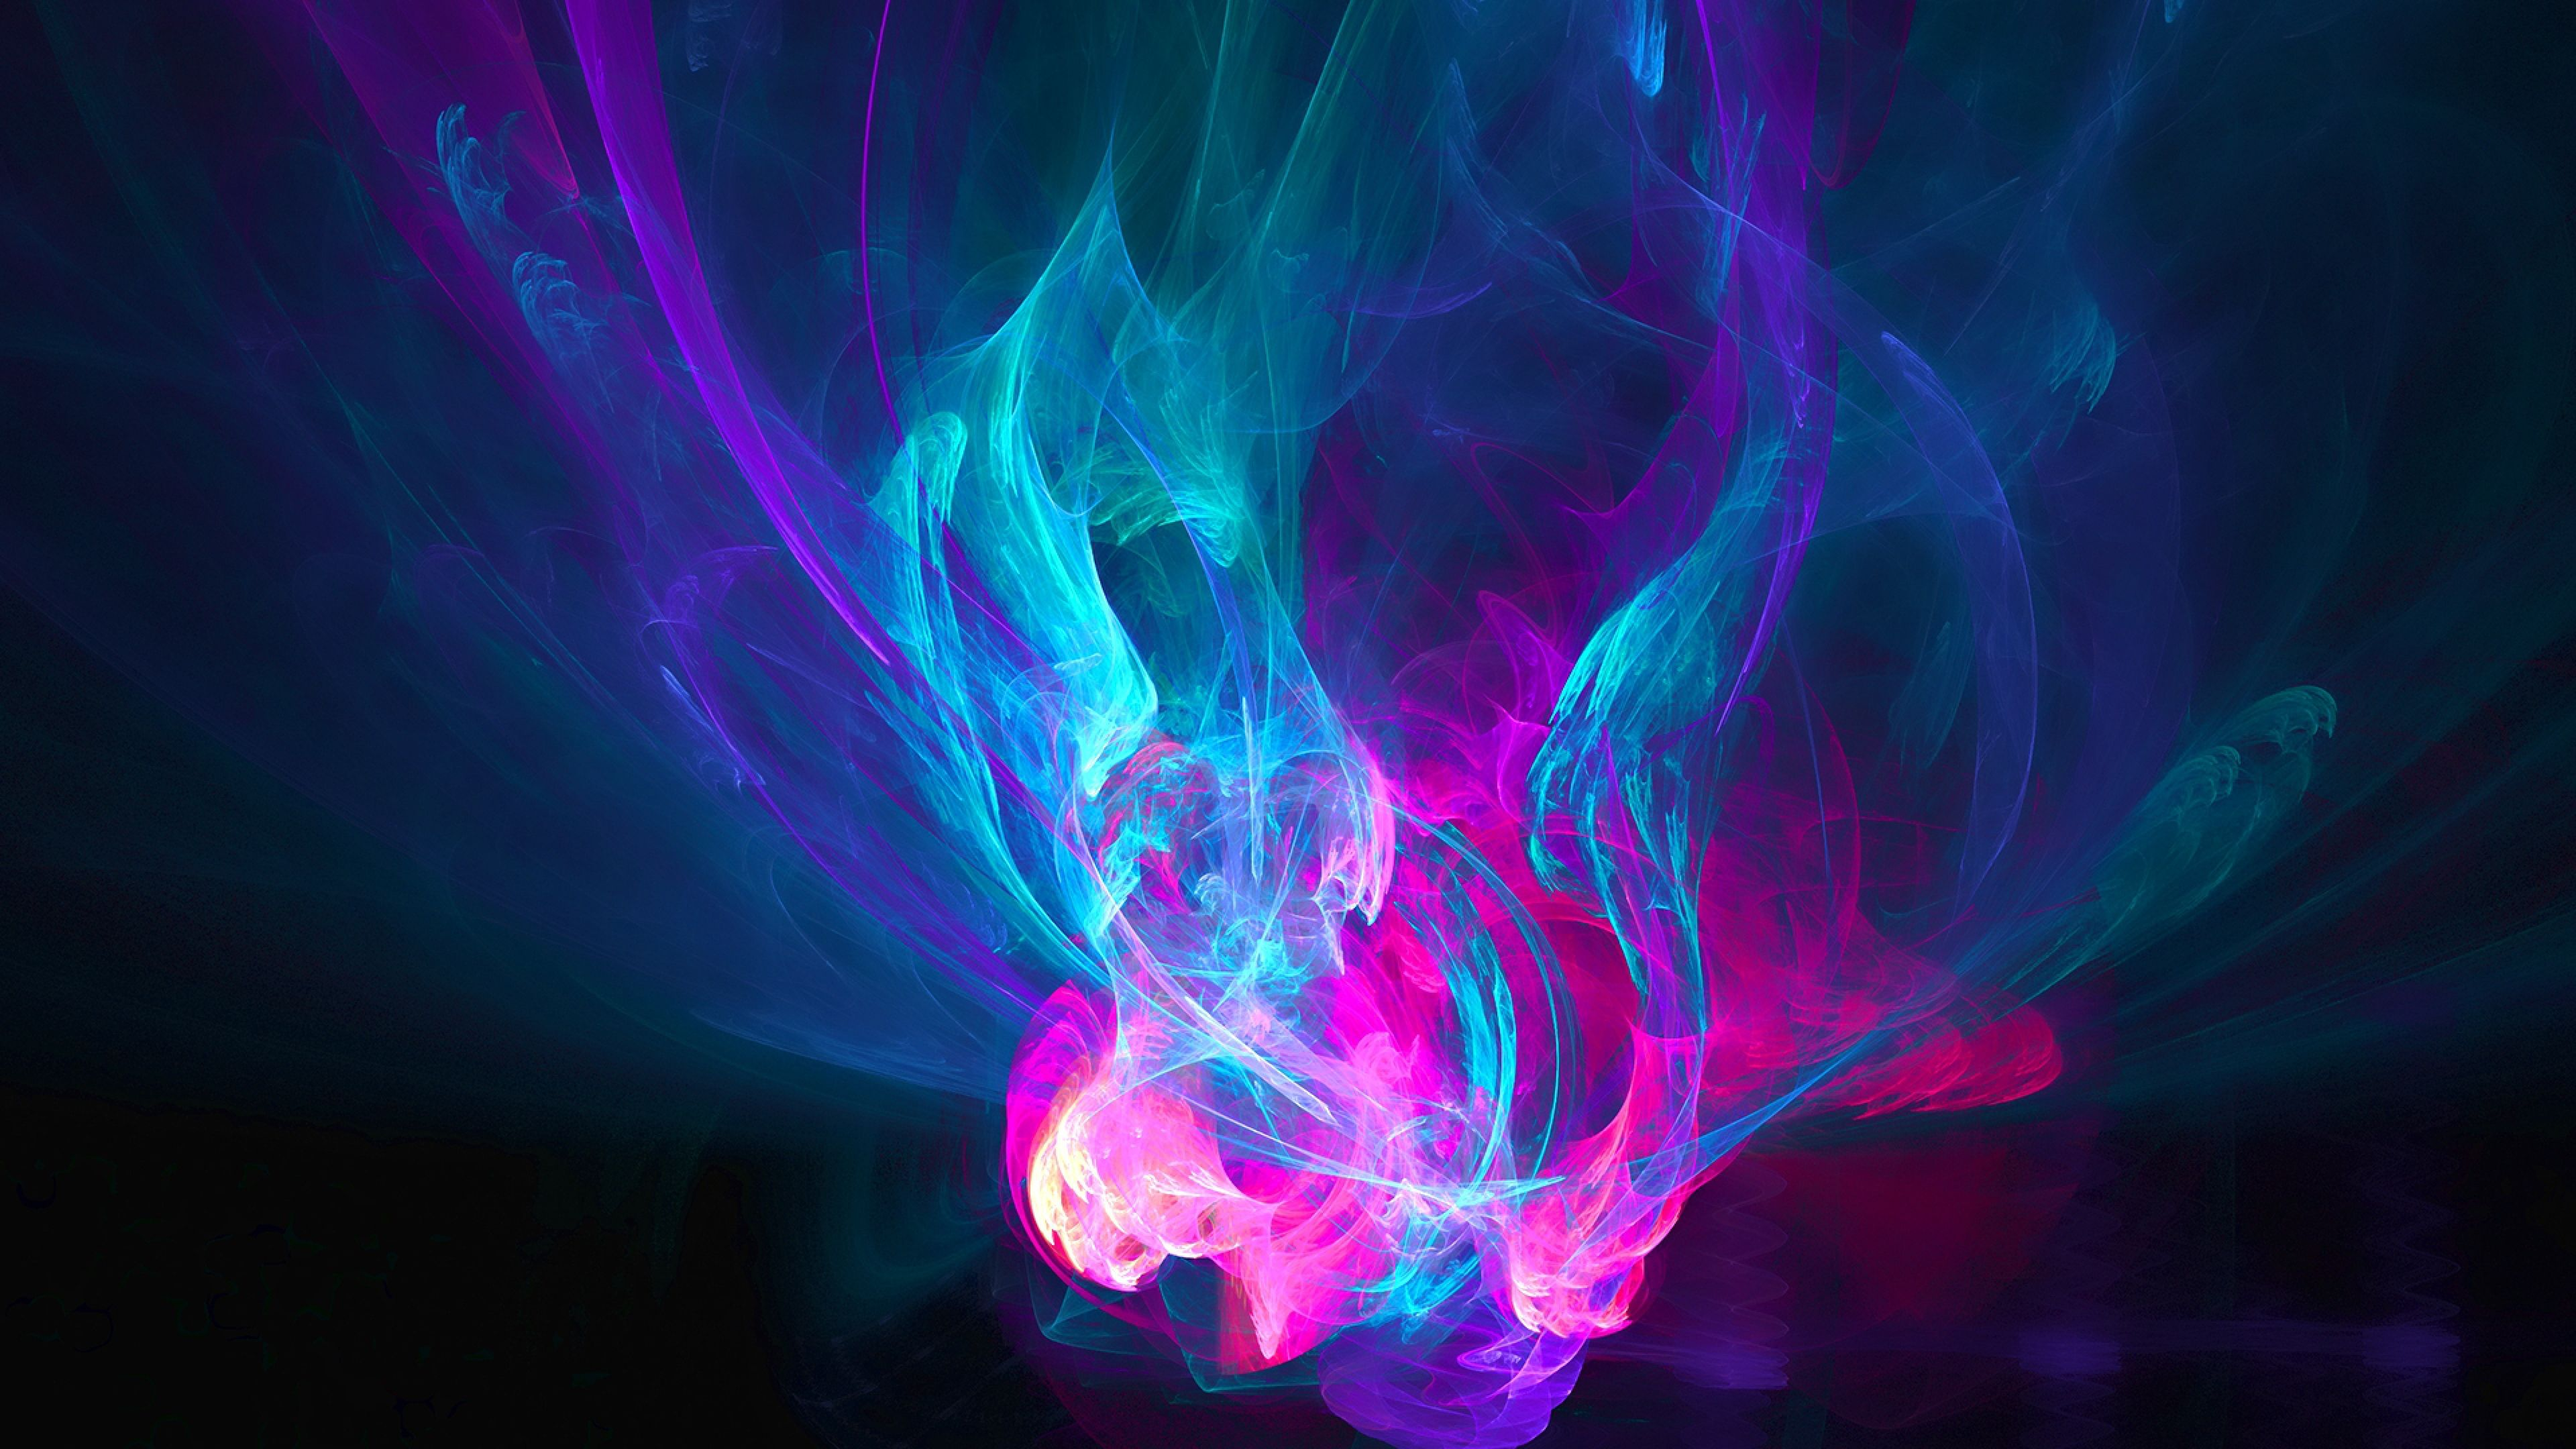 3840x2160 4K Purple Wallpapers High Quality | Download Free